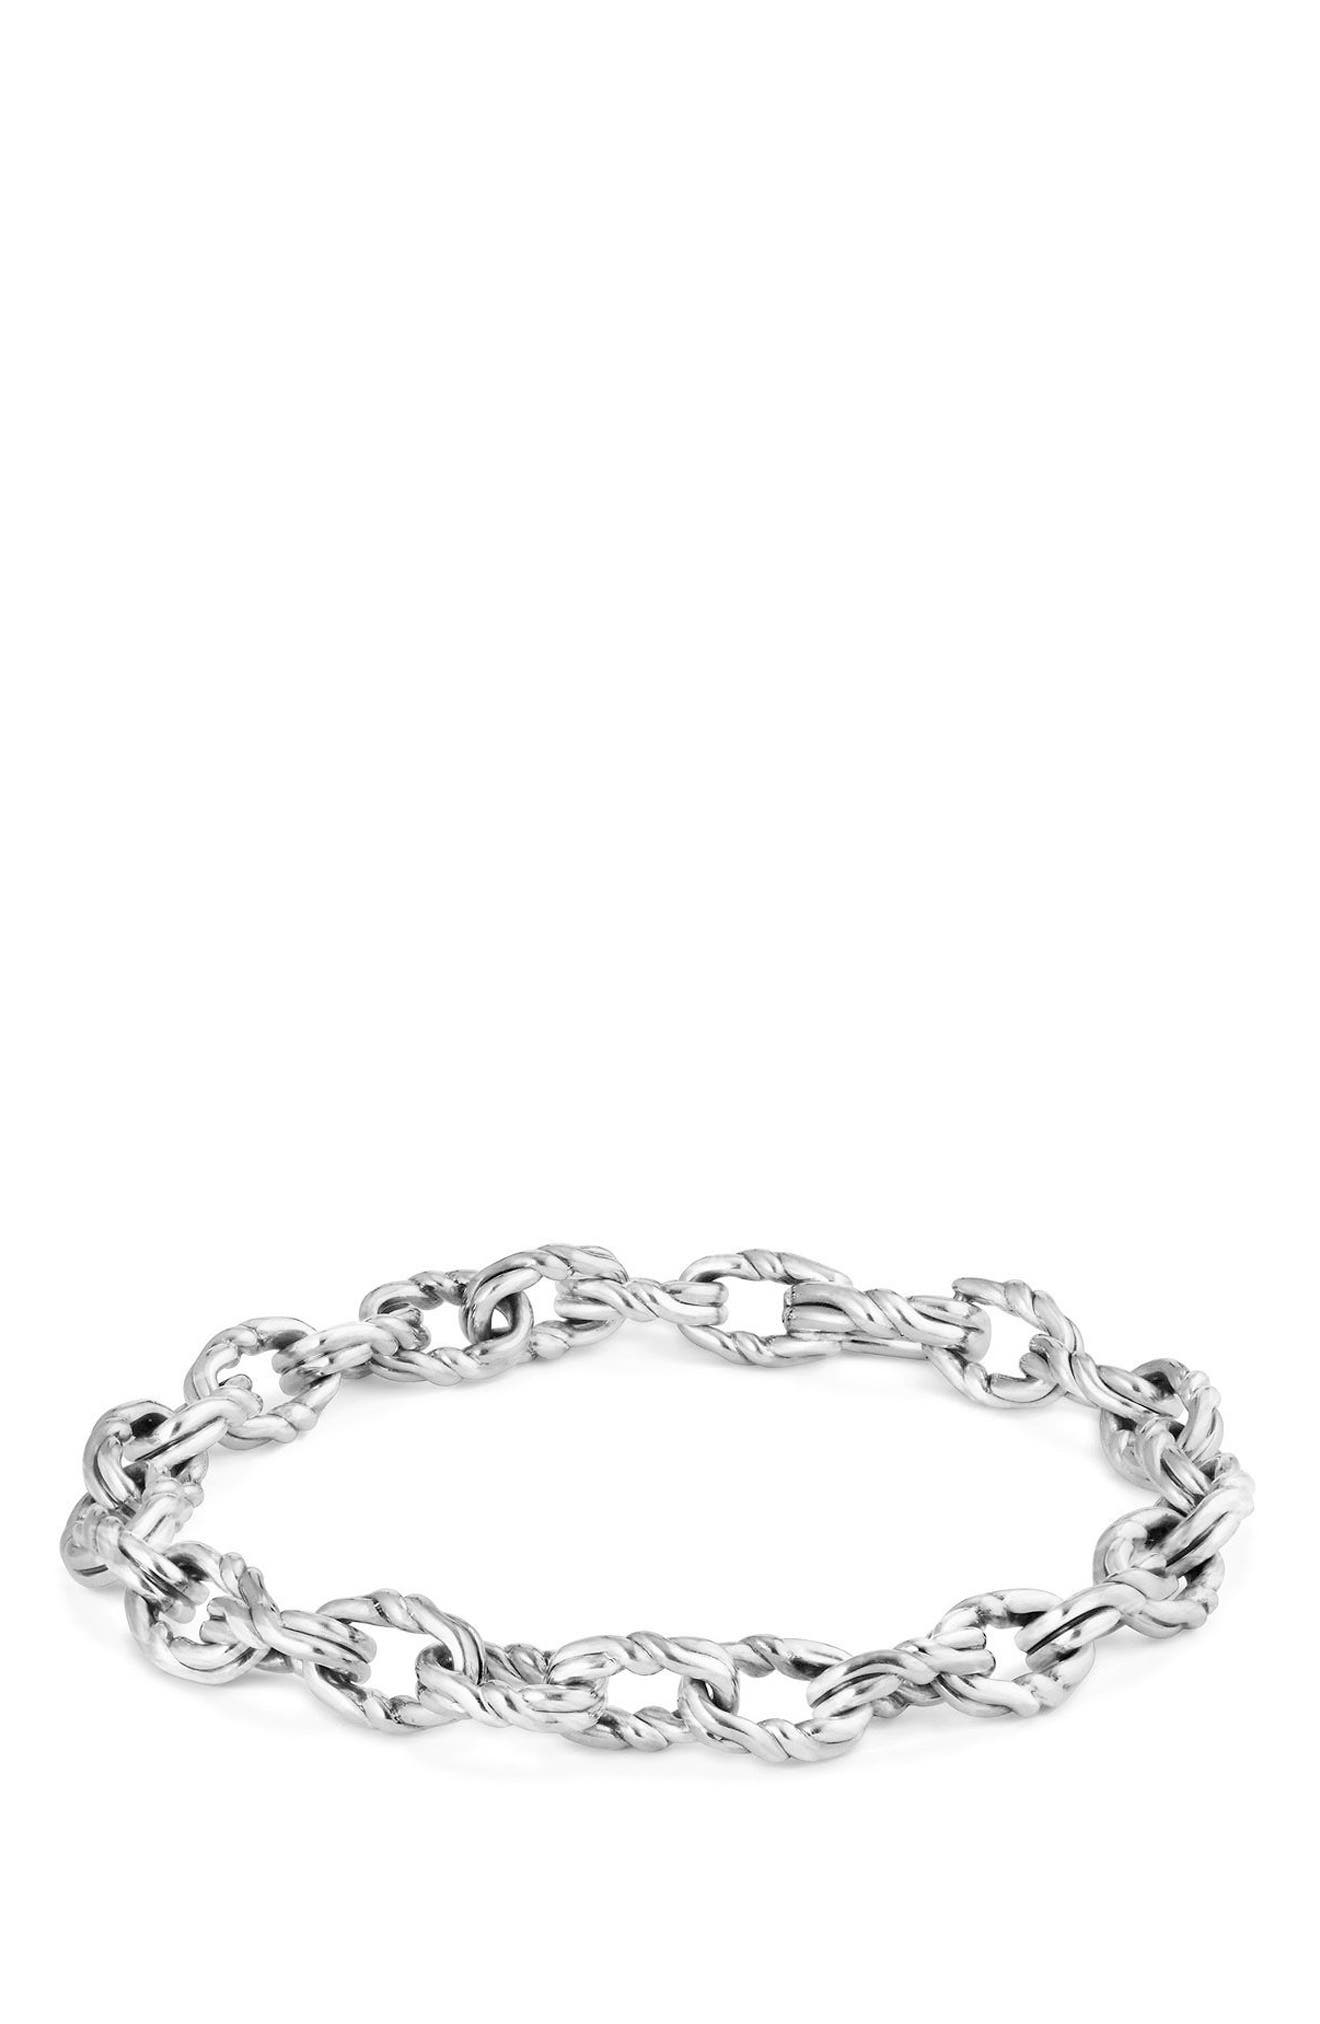 David Yurman Continuance Chain Bracelet